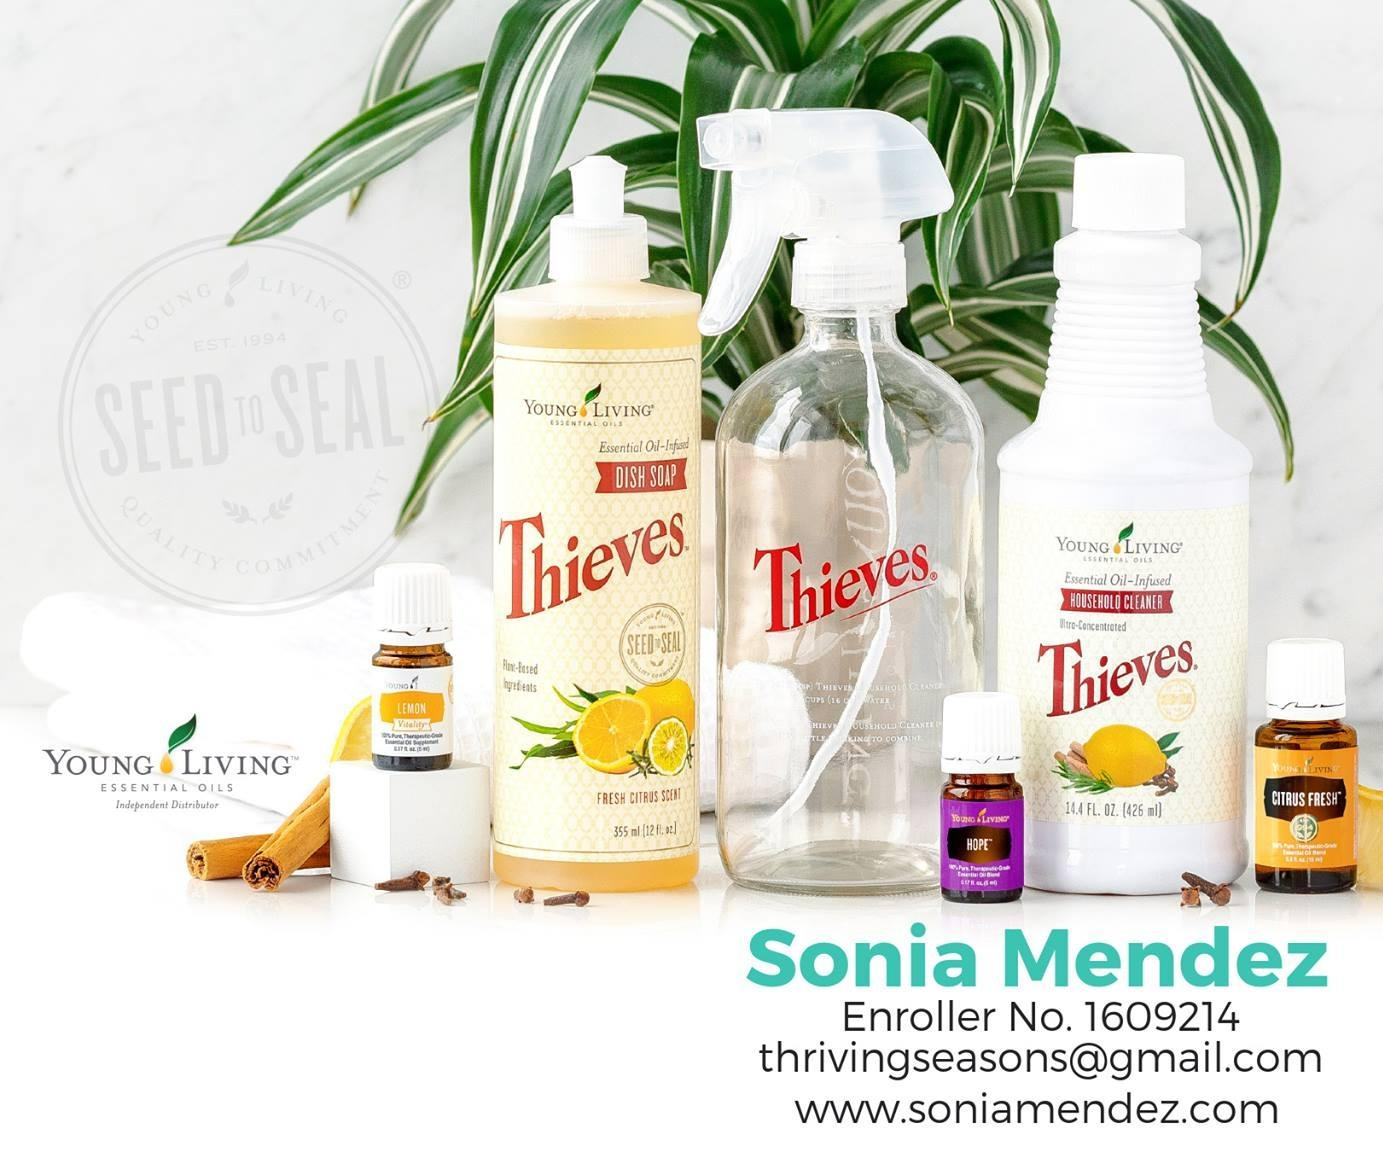 Sonia Mendez with Young Living image 4